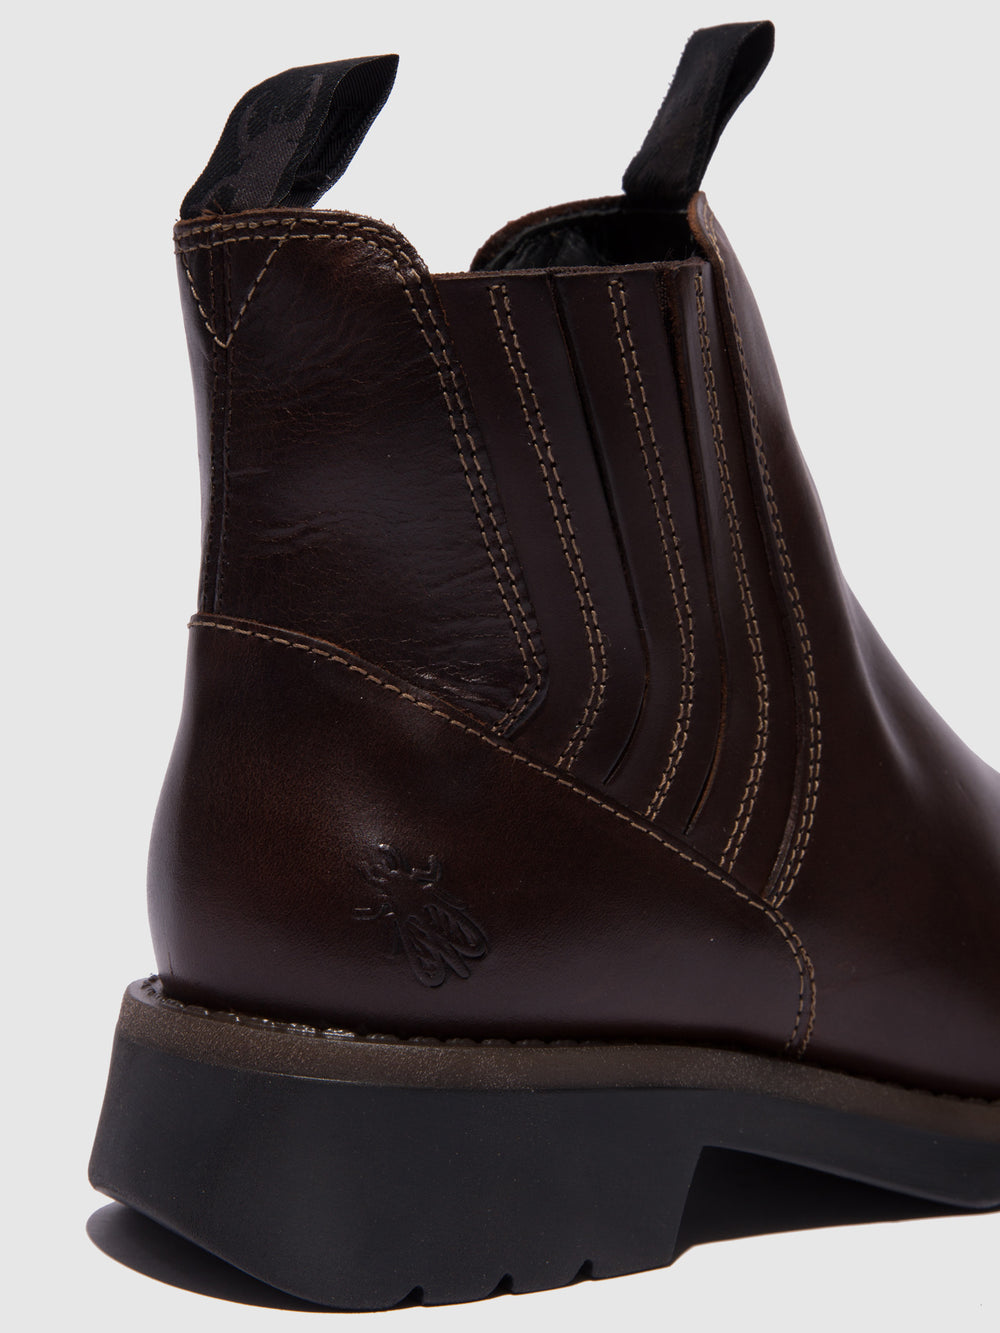 Chelsea Ankle Boots RALT541FLY DK.BROWN